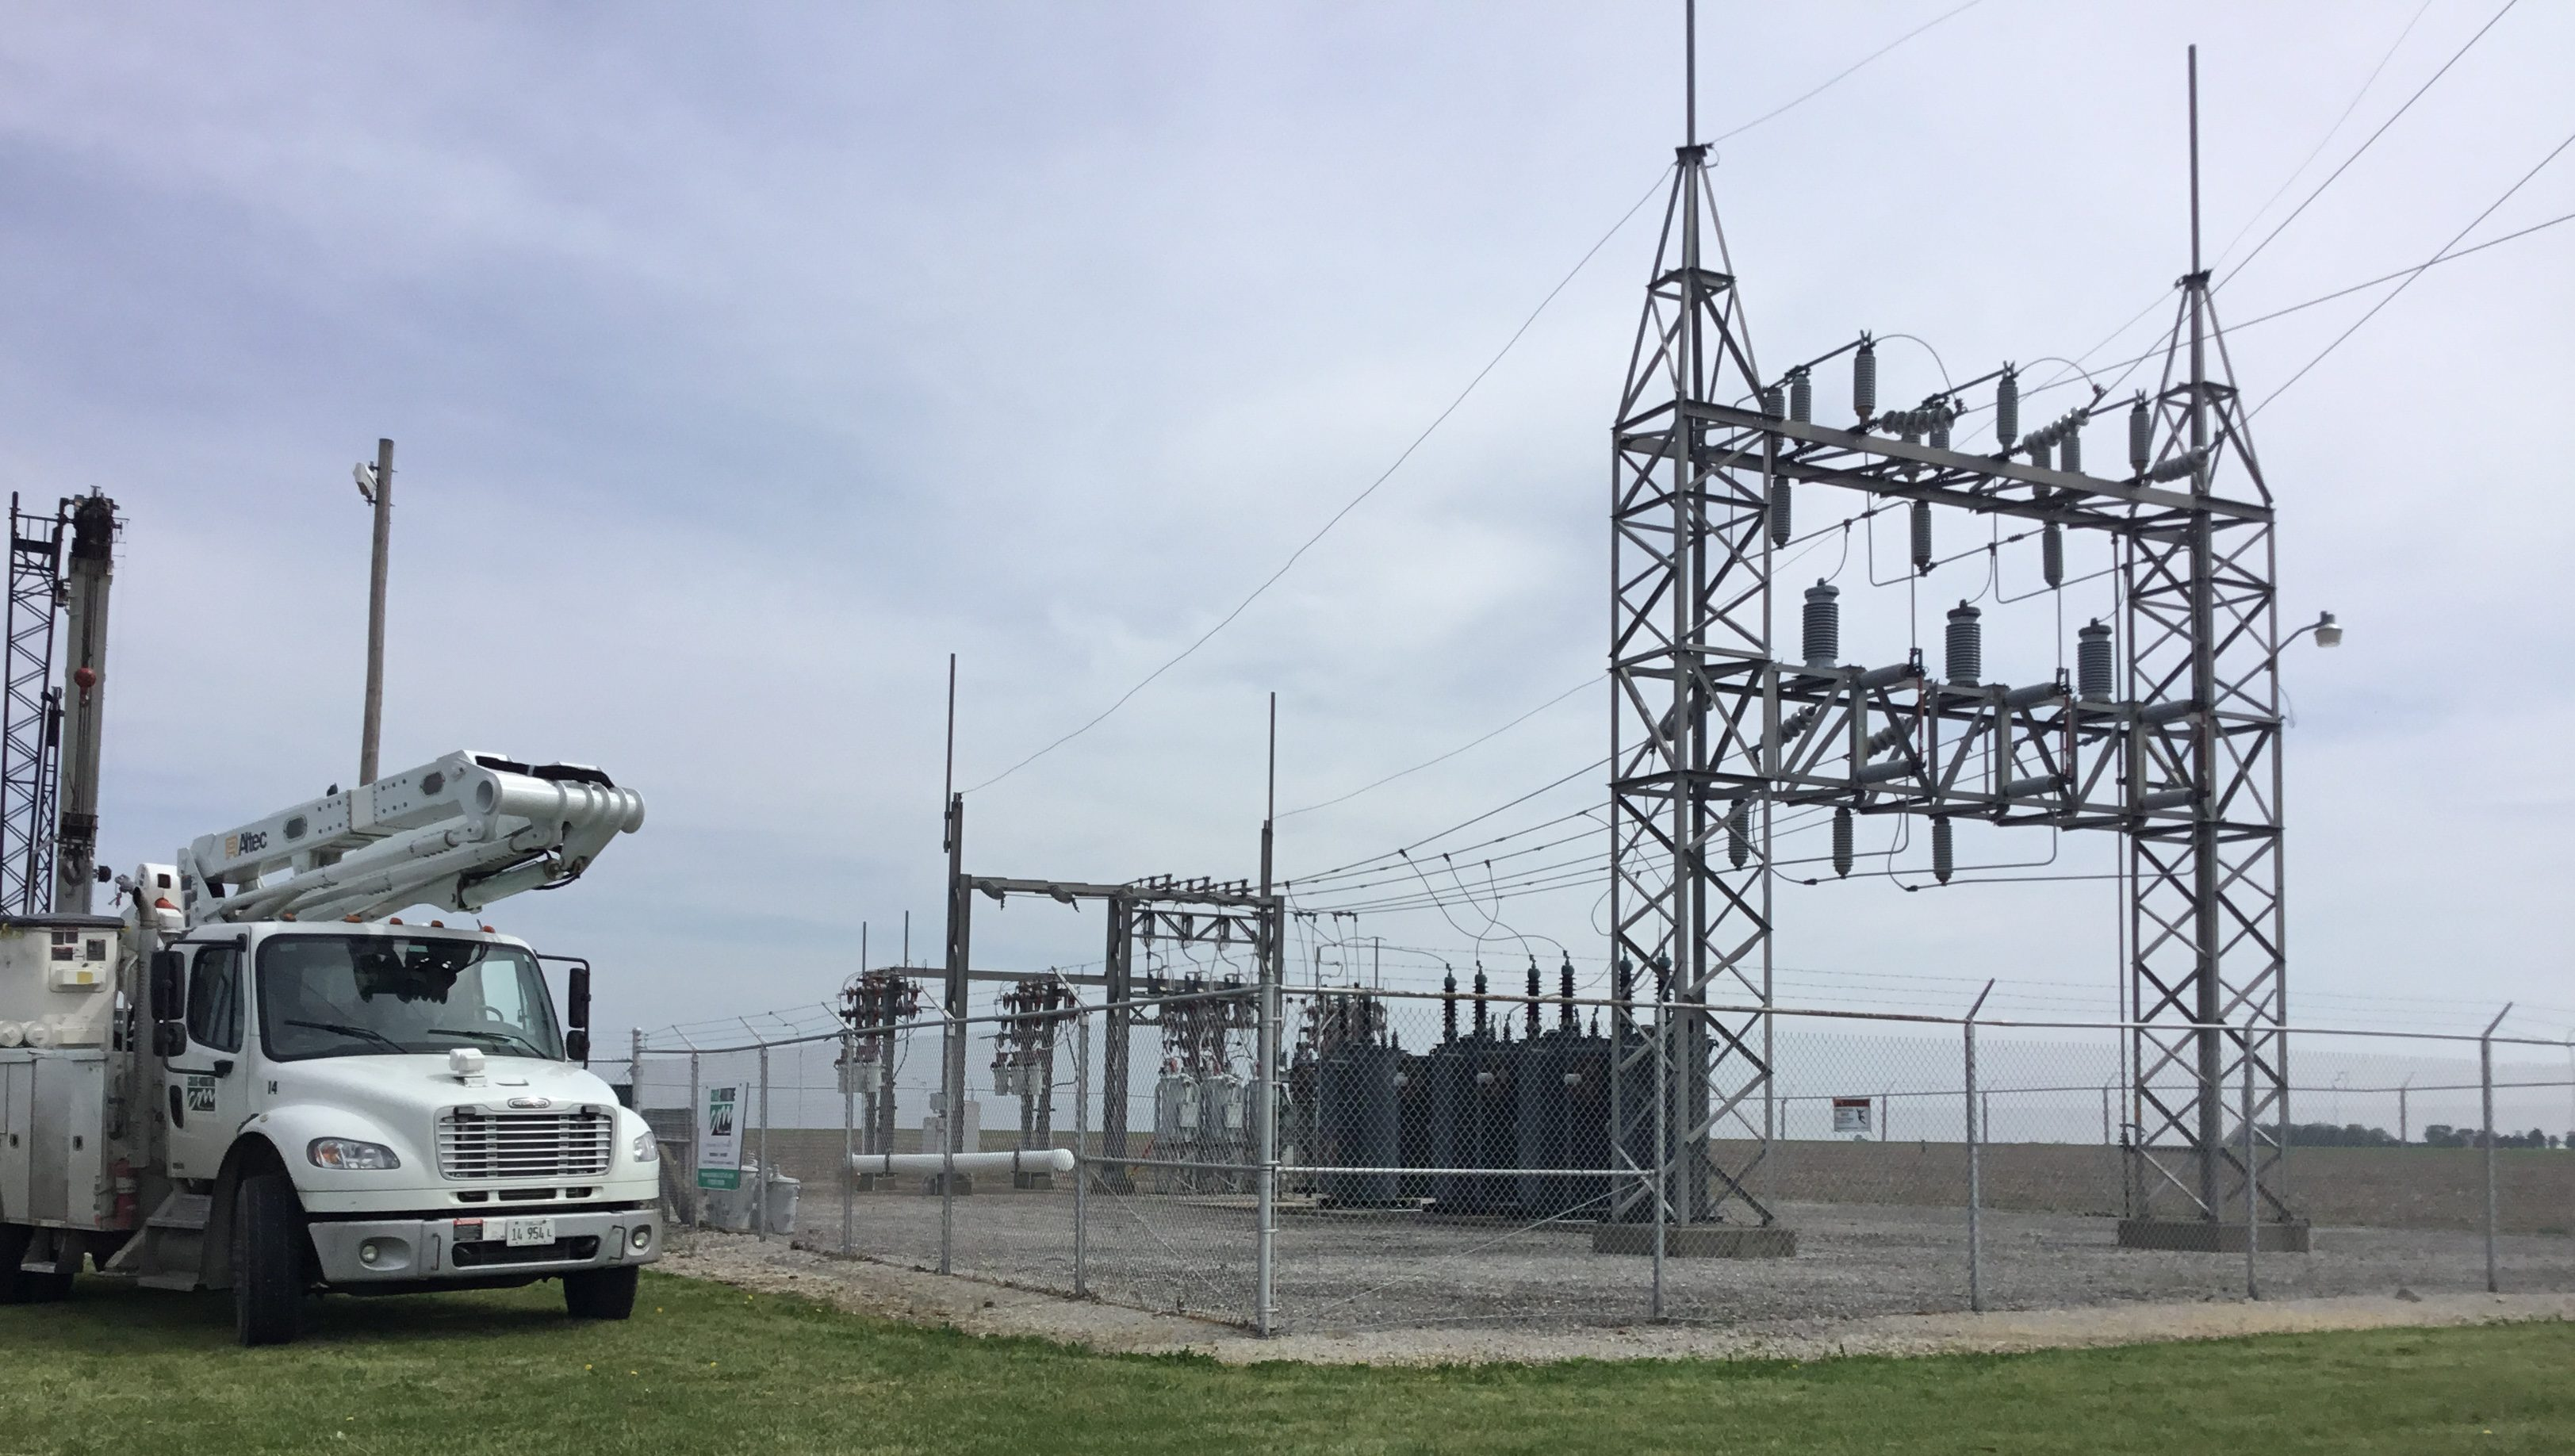 Outage Information – Coles-Moultrie Electric Cooperative